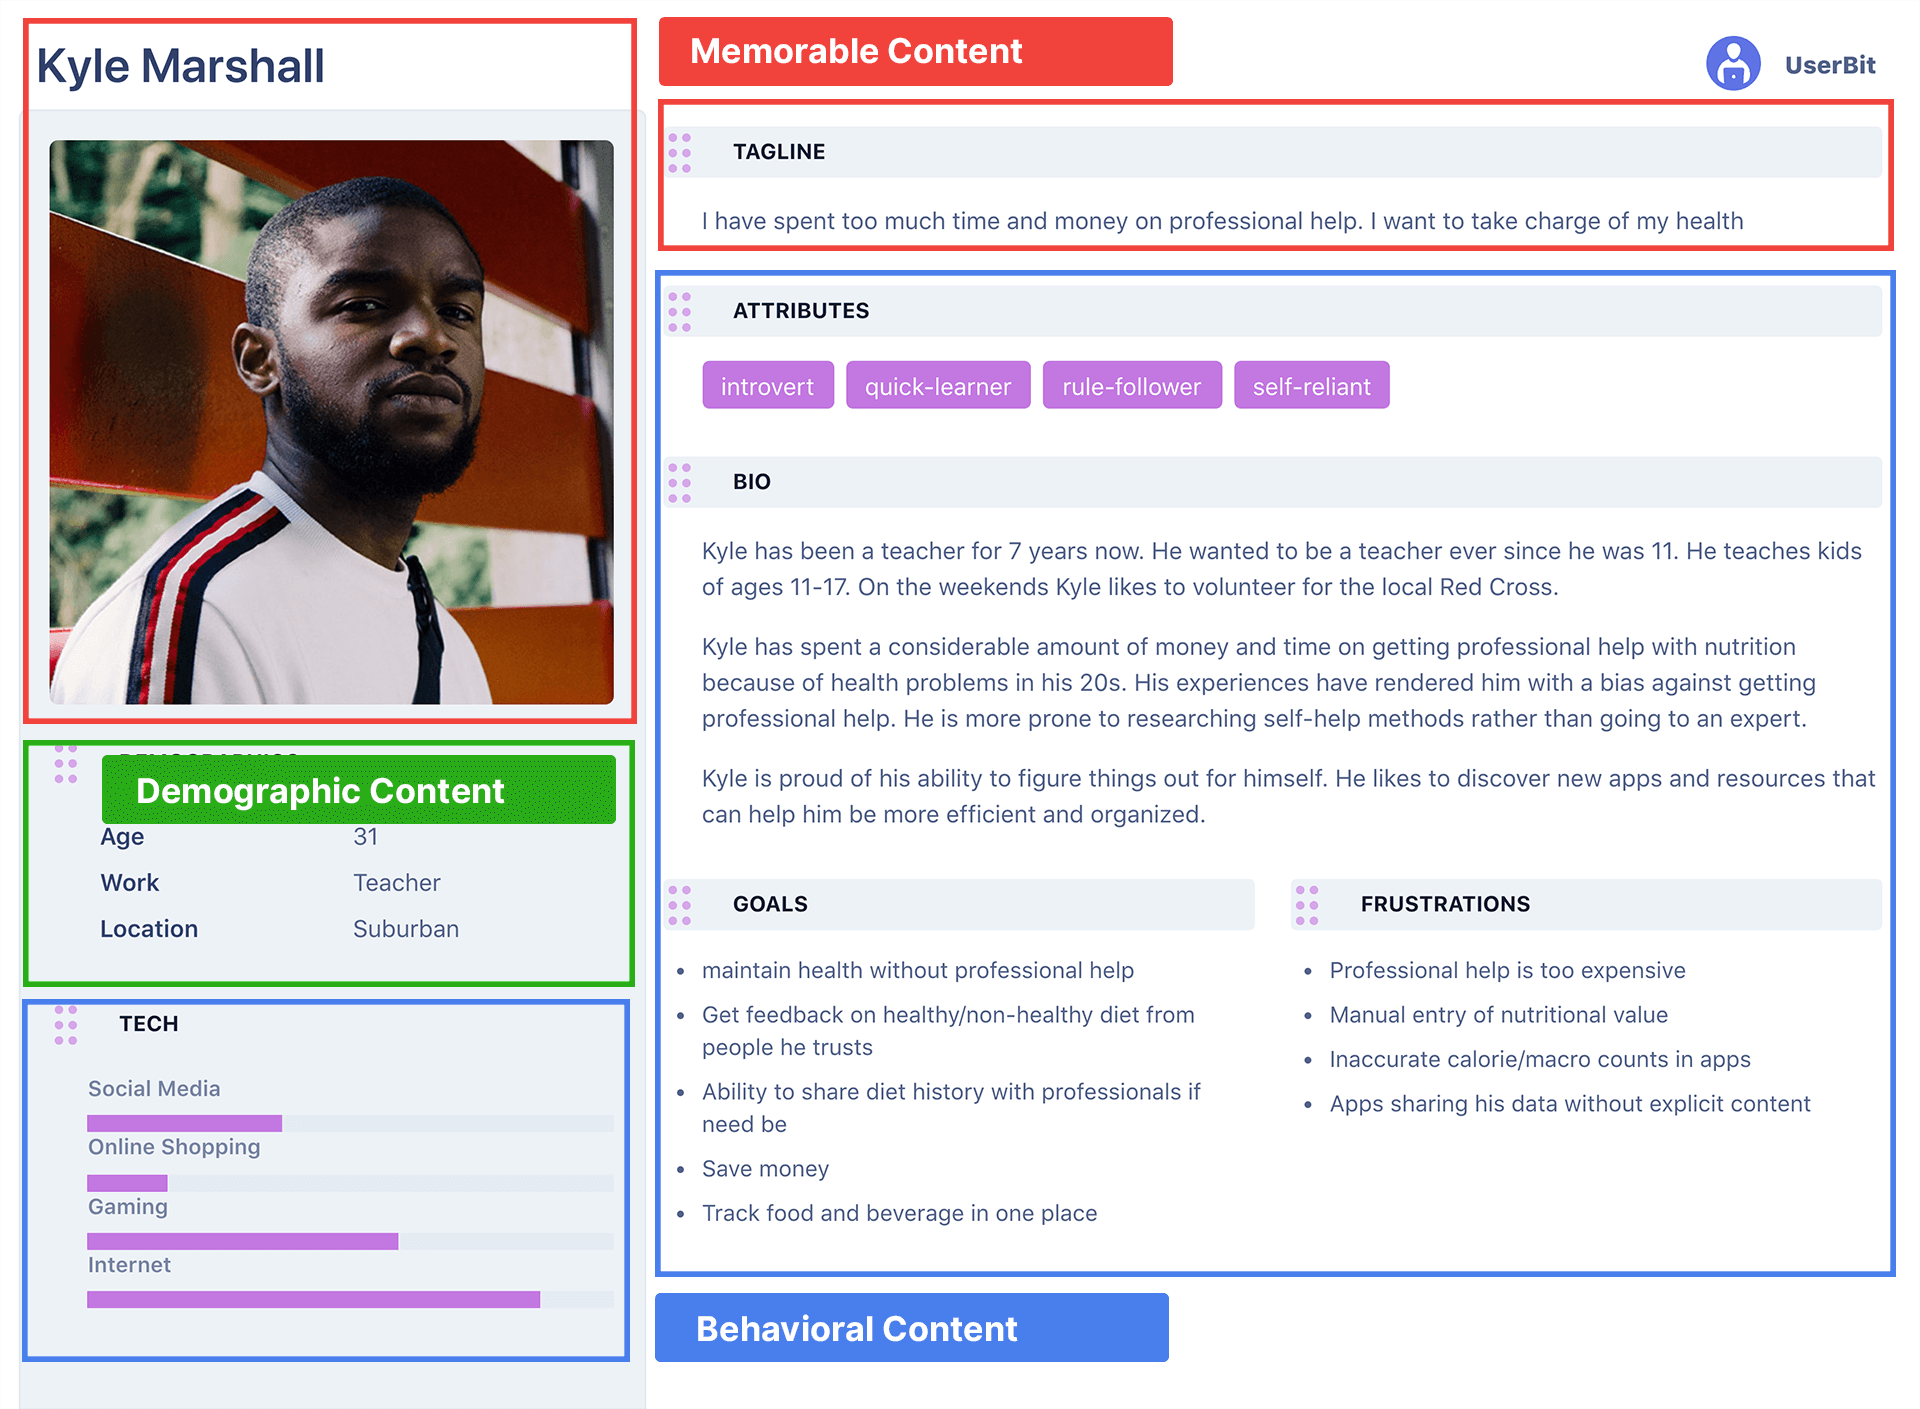 Anatomy of a UX persona on UserBit